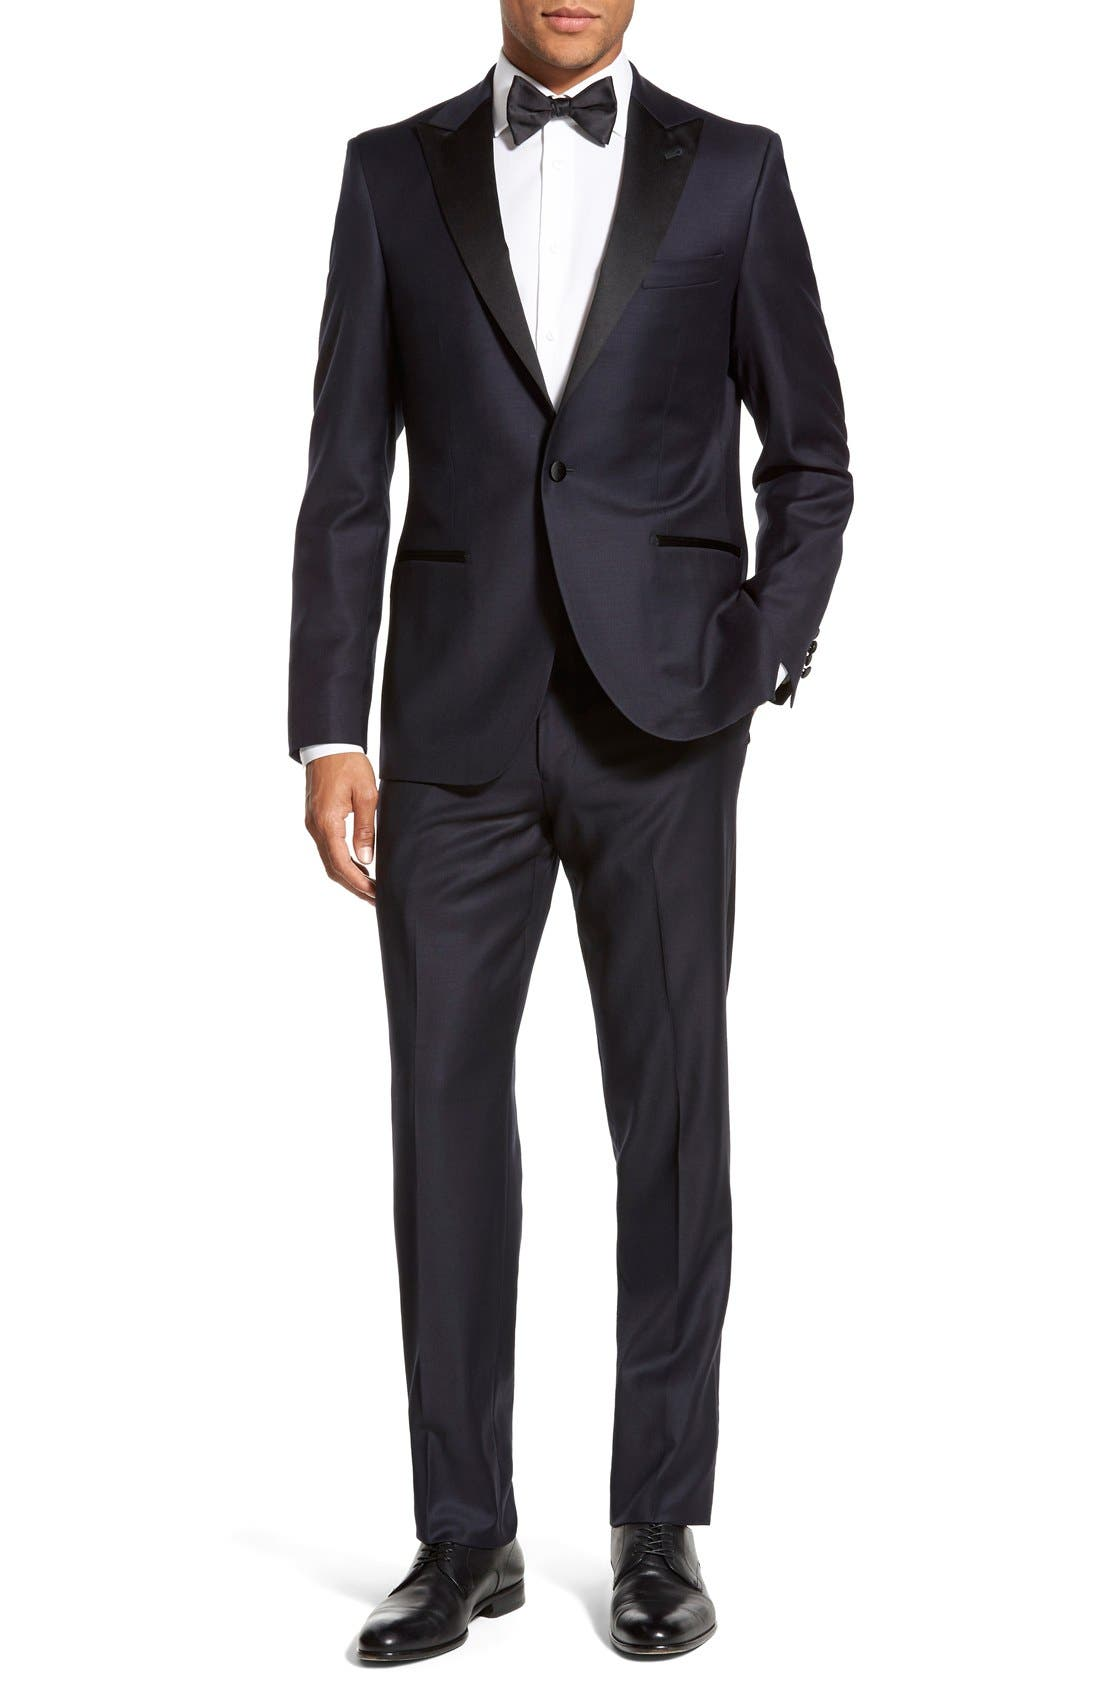 Alternate Image 1 Selected - Strong Suit 'Aston' Trim Fit Solid Wool Tuxedo